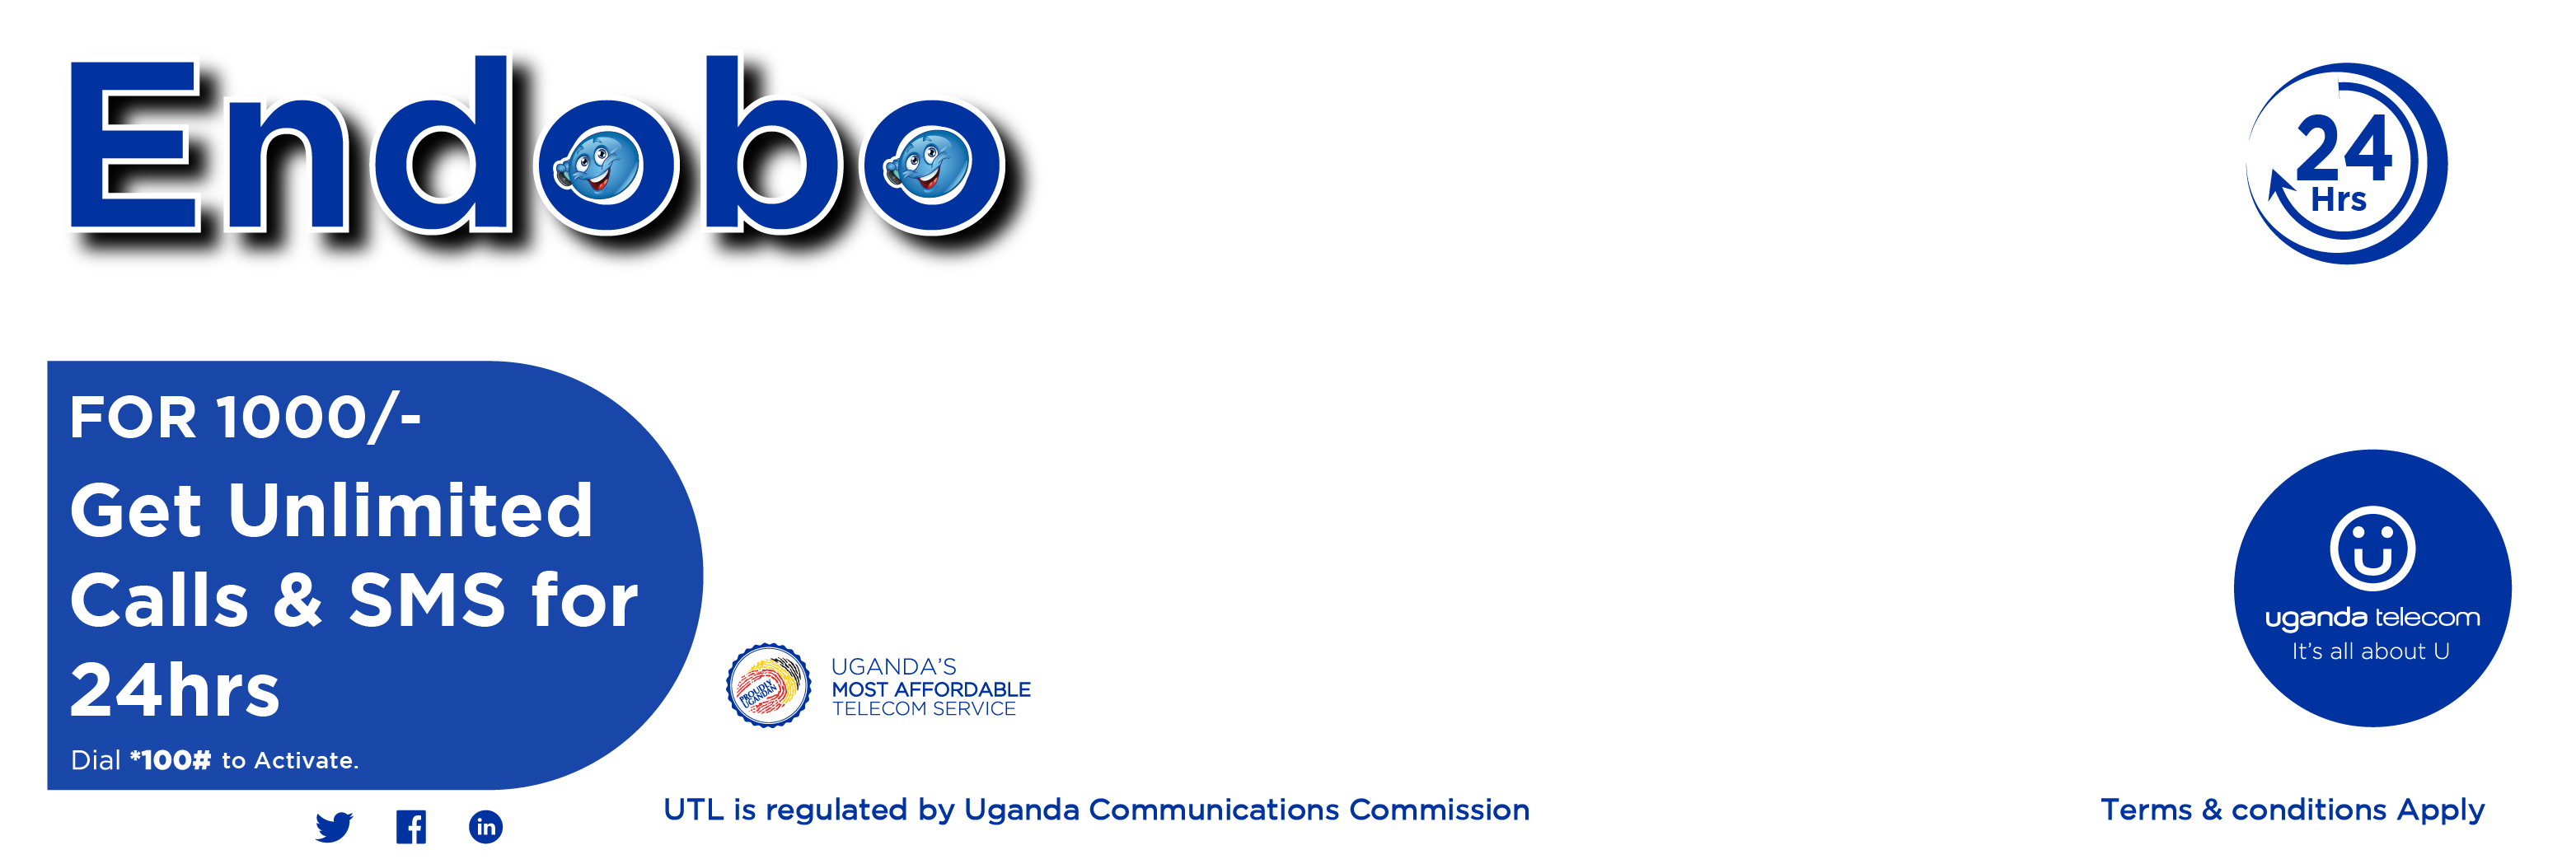 Uganda Telecom – It's all about you!